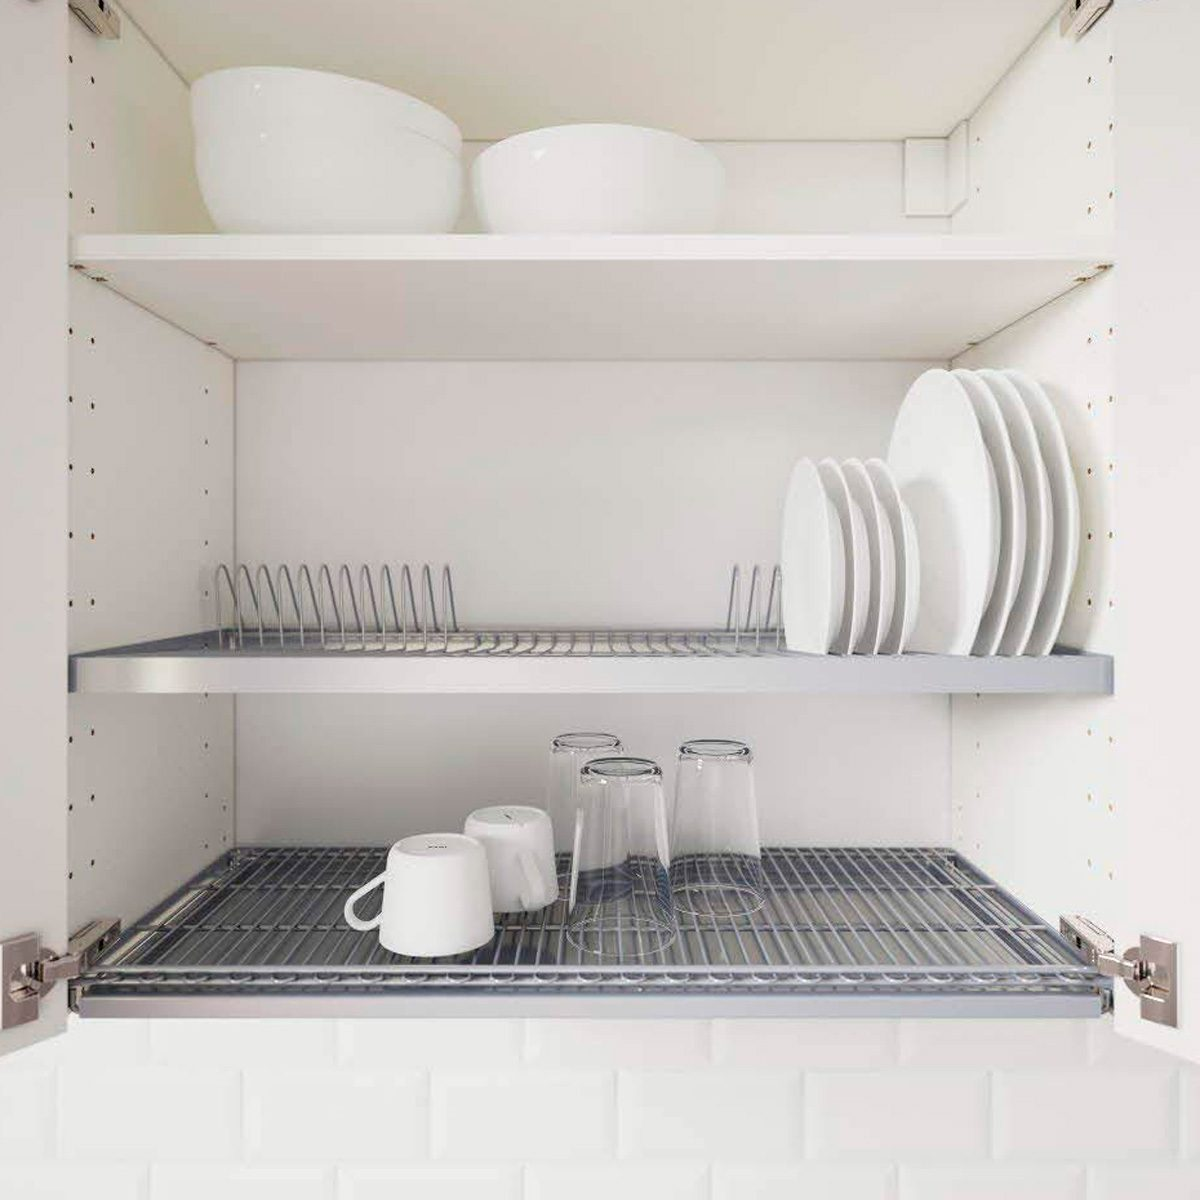 Dish Drying Rack For Wall Cabinet